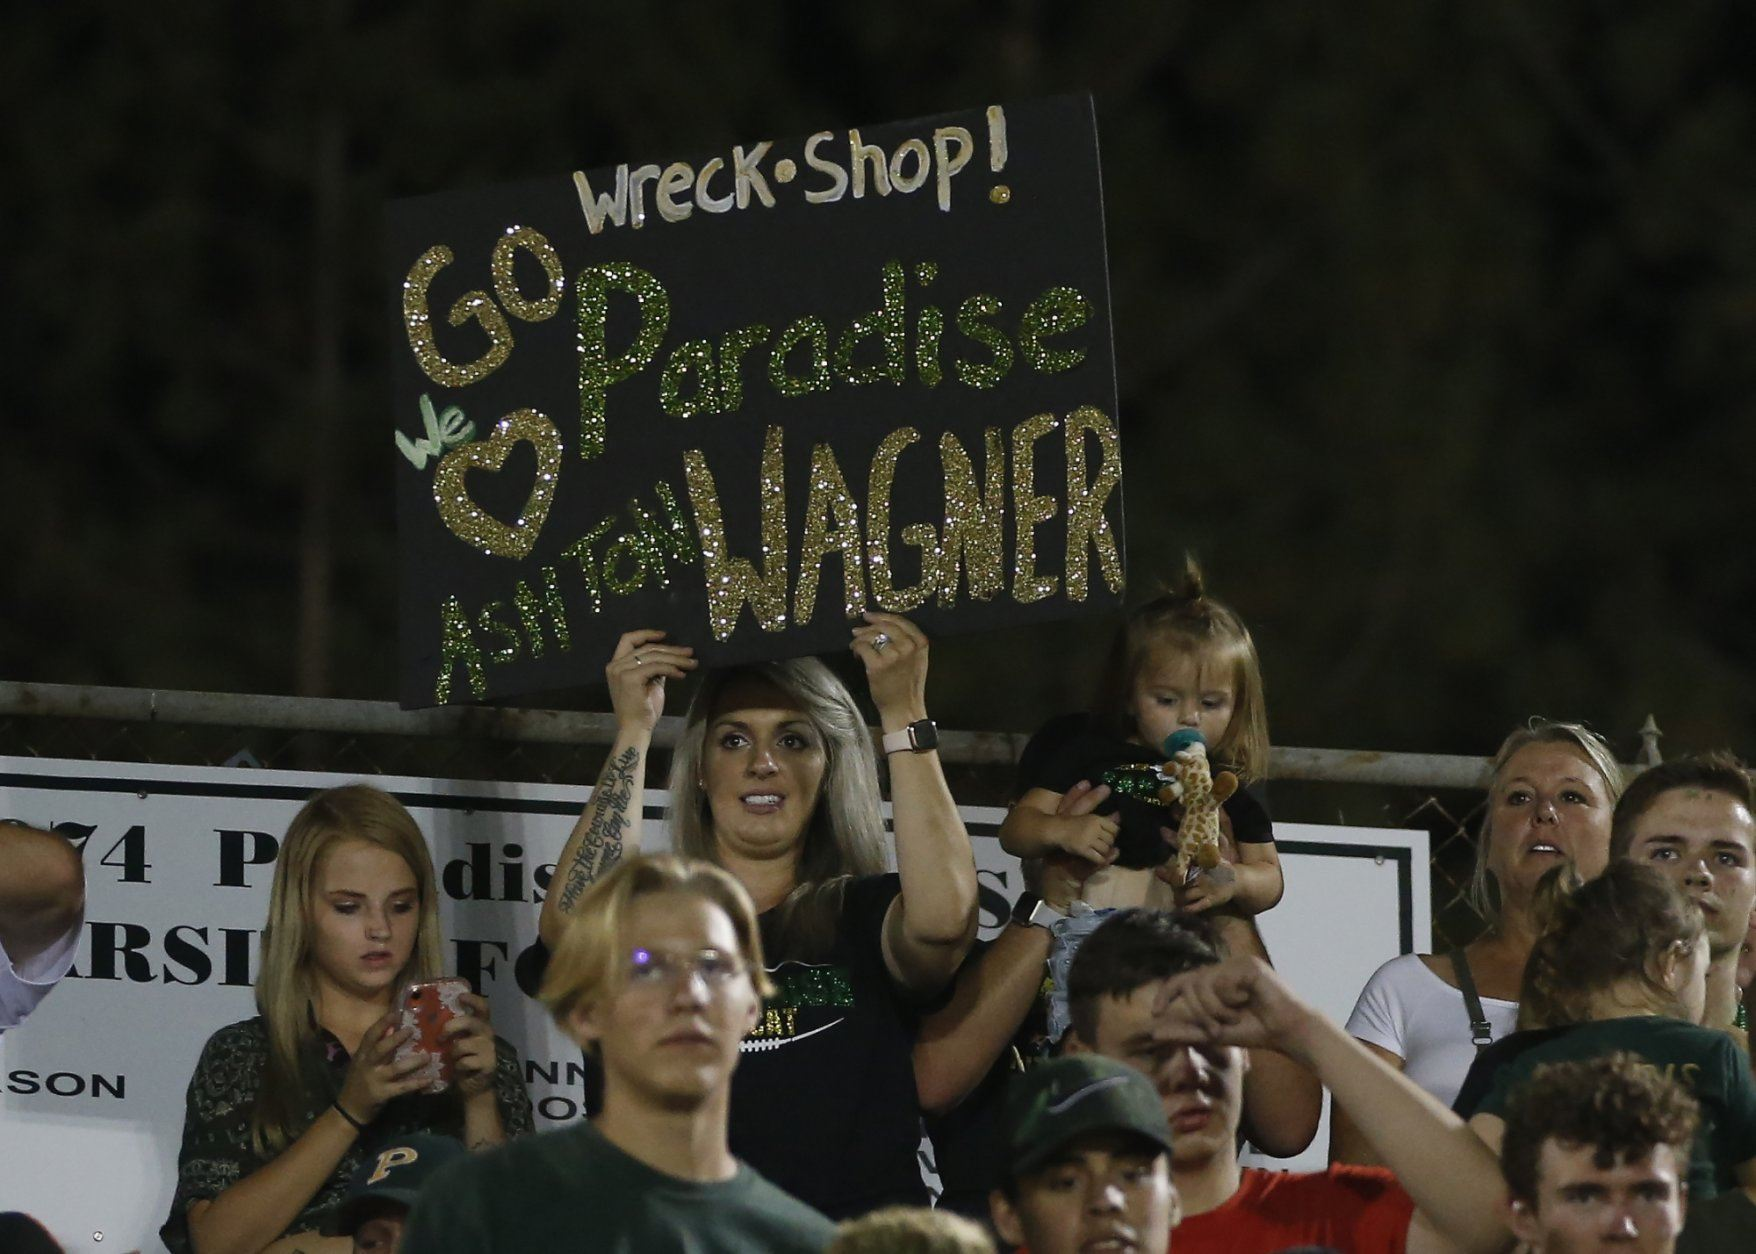 Paradise High School running back Ashton Wagner is shown support from people in the stands during the game against Williams High School in Paradise, Calif., Friday, Aug. 23, 2019. This was the first game for the school since a wildfire last year that killed dozens and destroyed nearly 19,000 buildings including the homes of most of the players. Paradise won 42-0. (AP Photo/Rich Pedroncelli)